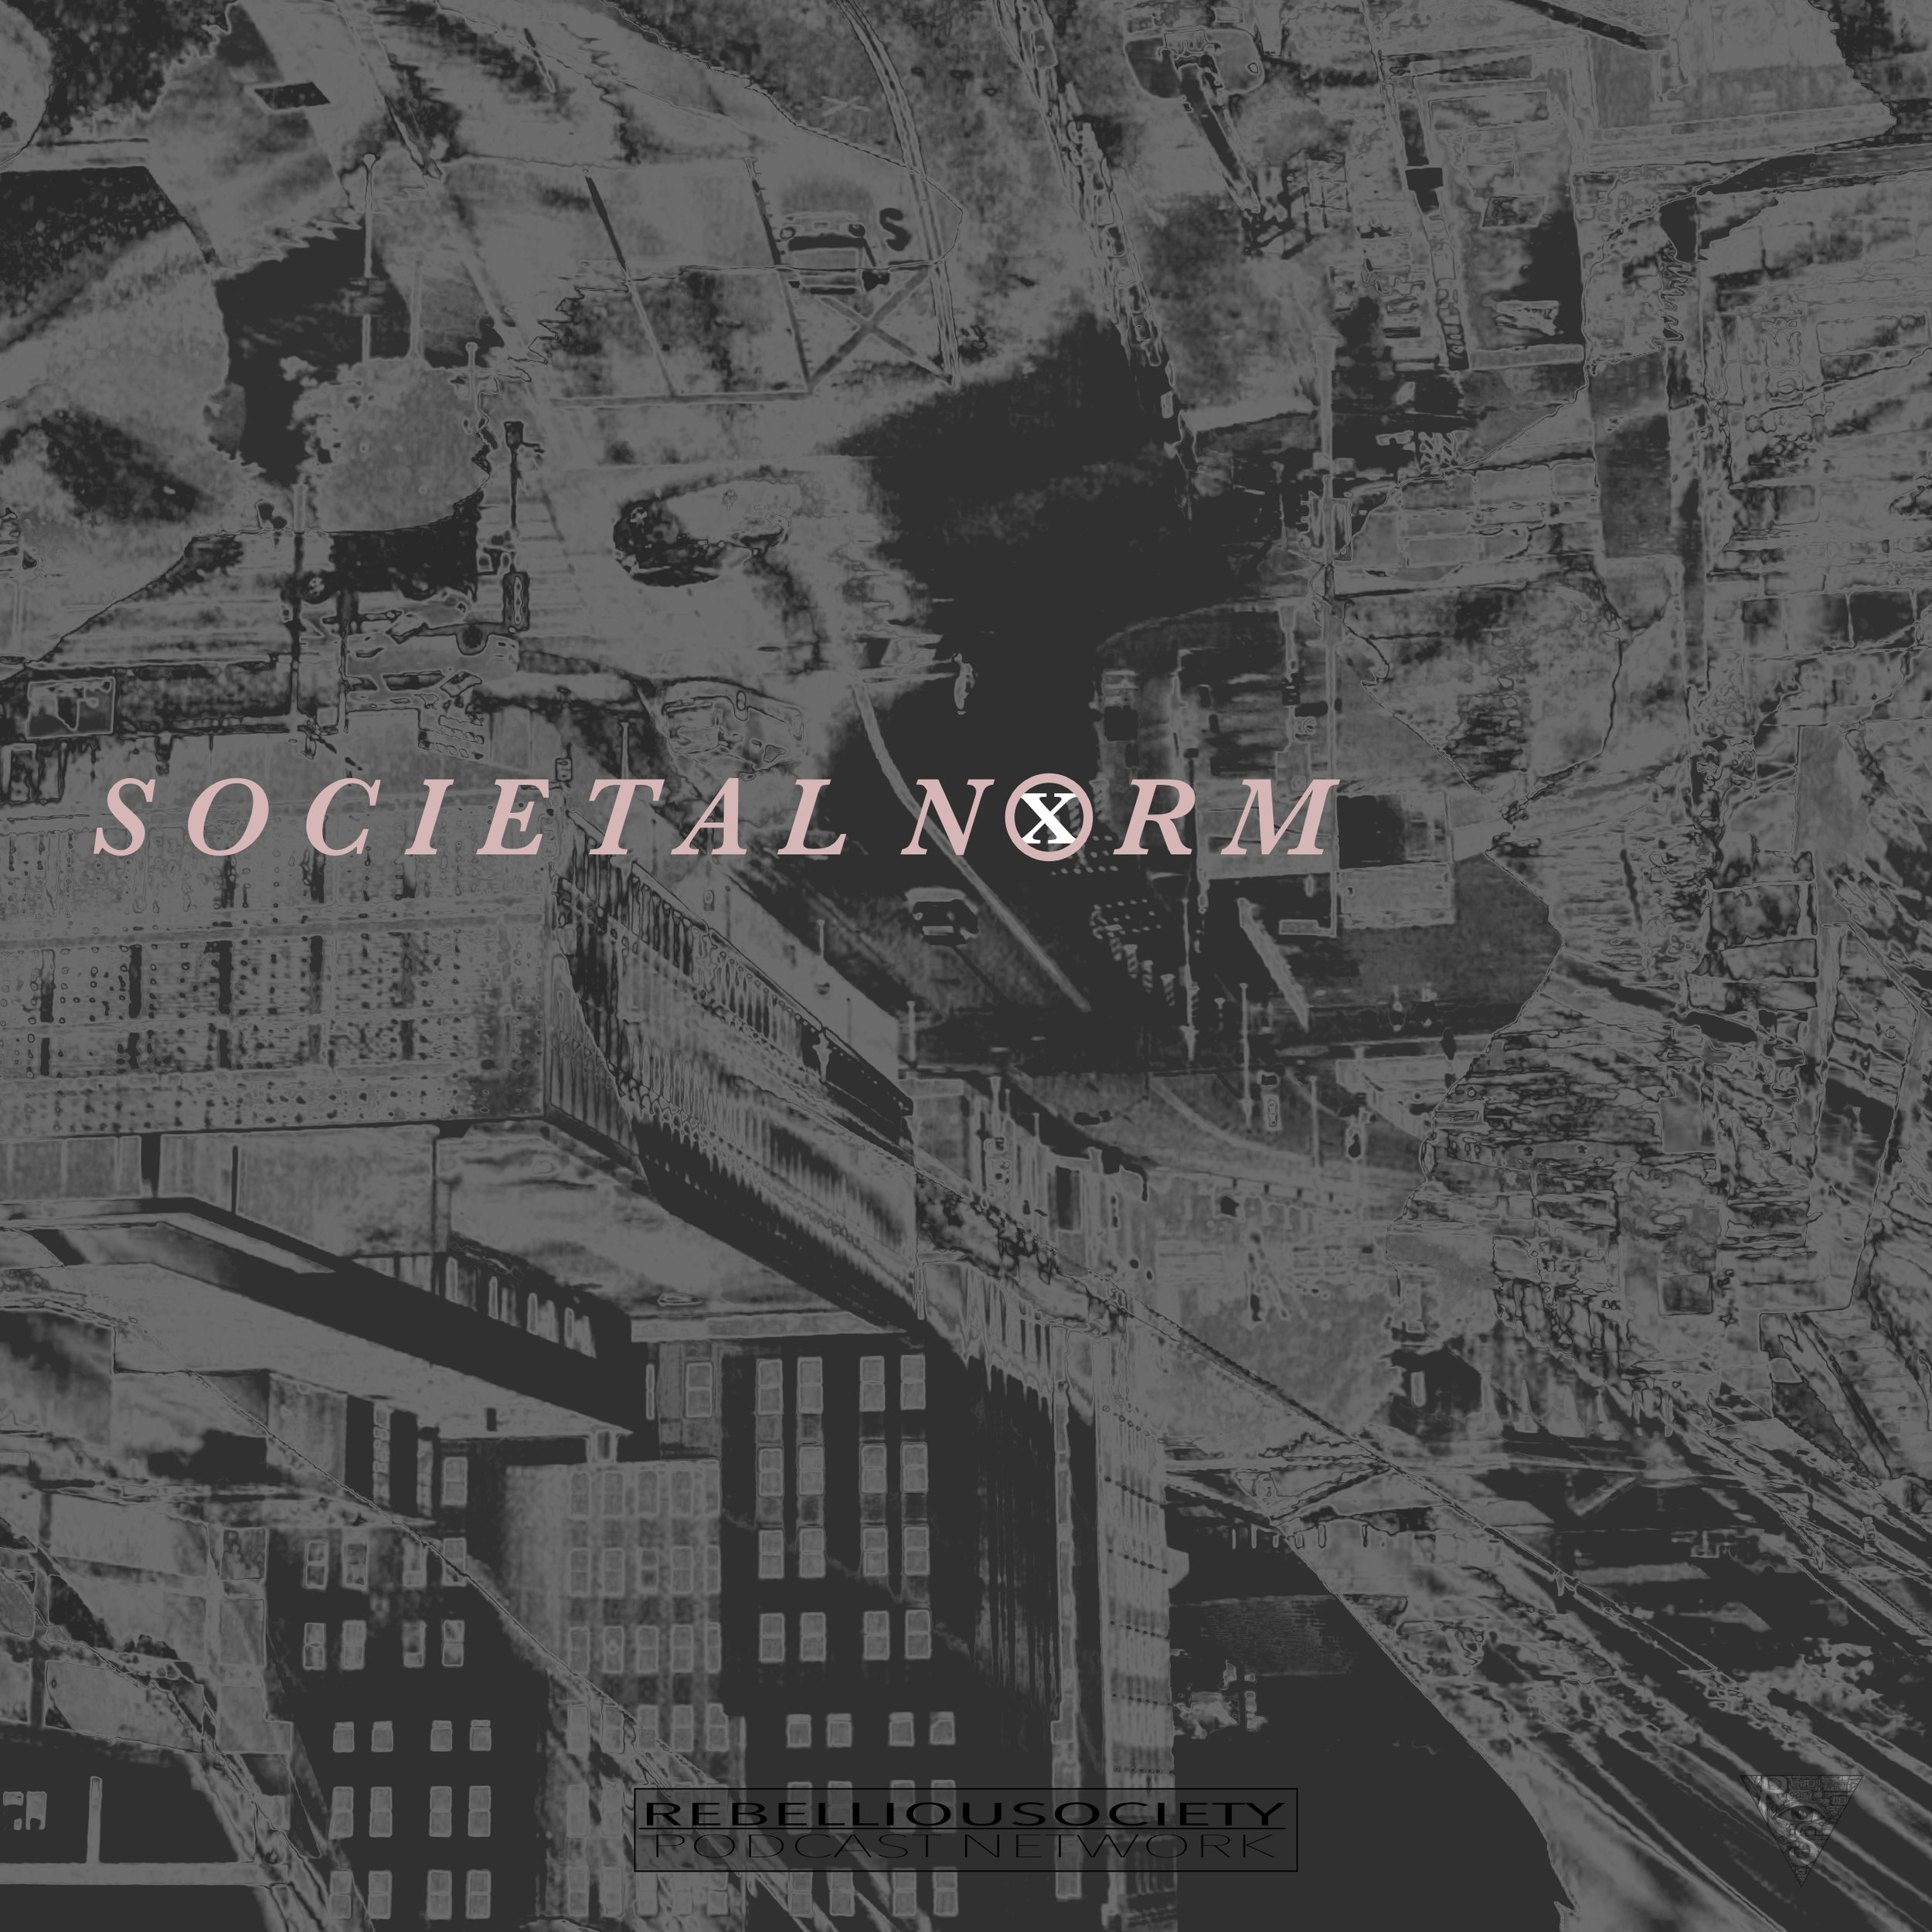 SOCIETAL NORM PODCAST - A podcast that breaks down and seeks to add context to society's tough questions through focusing on the things that create and hold together a society: art, love, war, culture, & more.